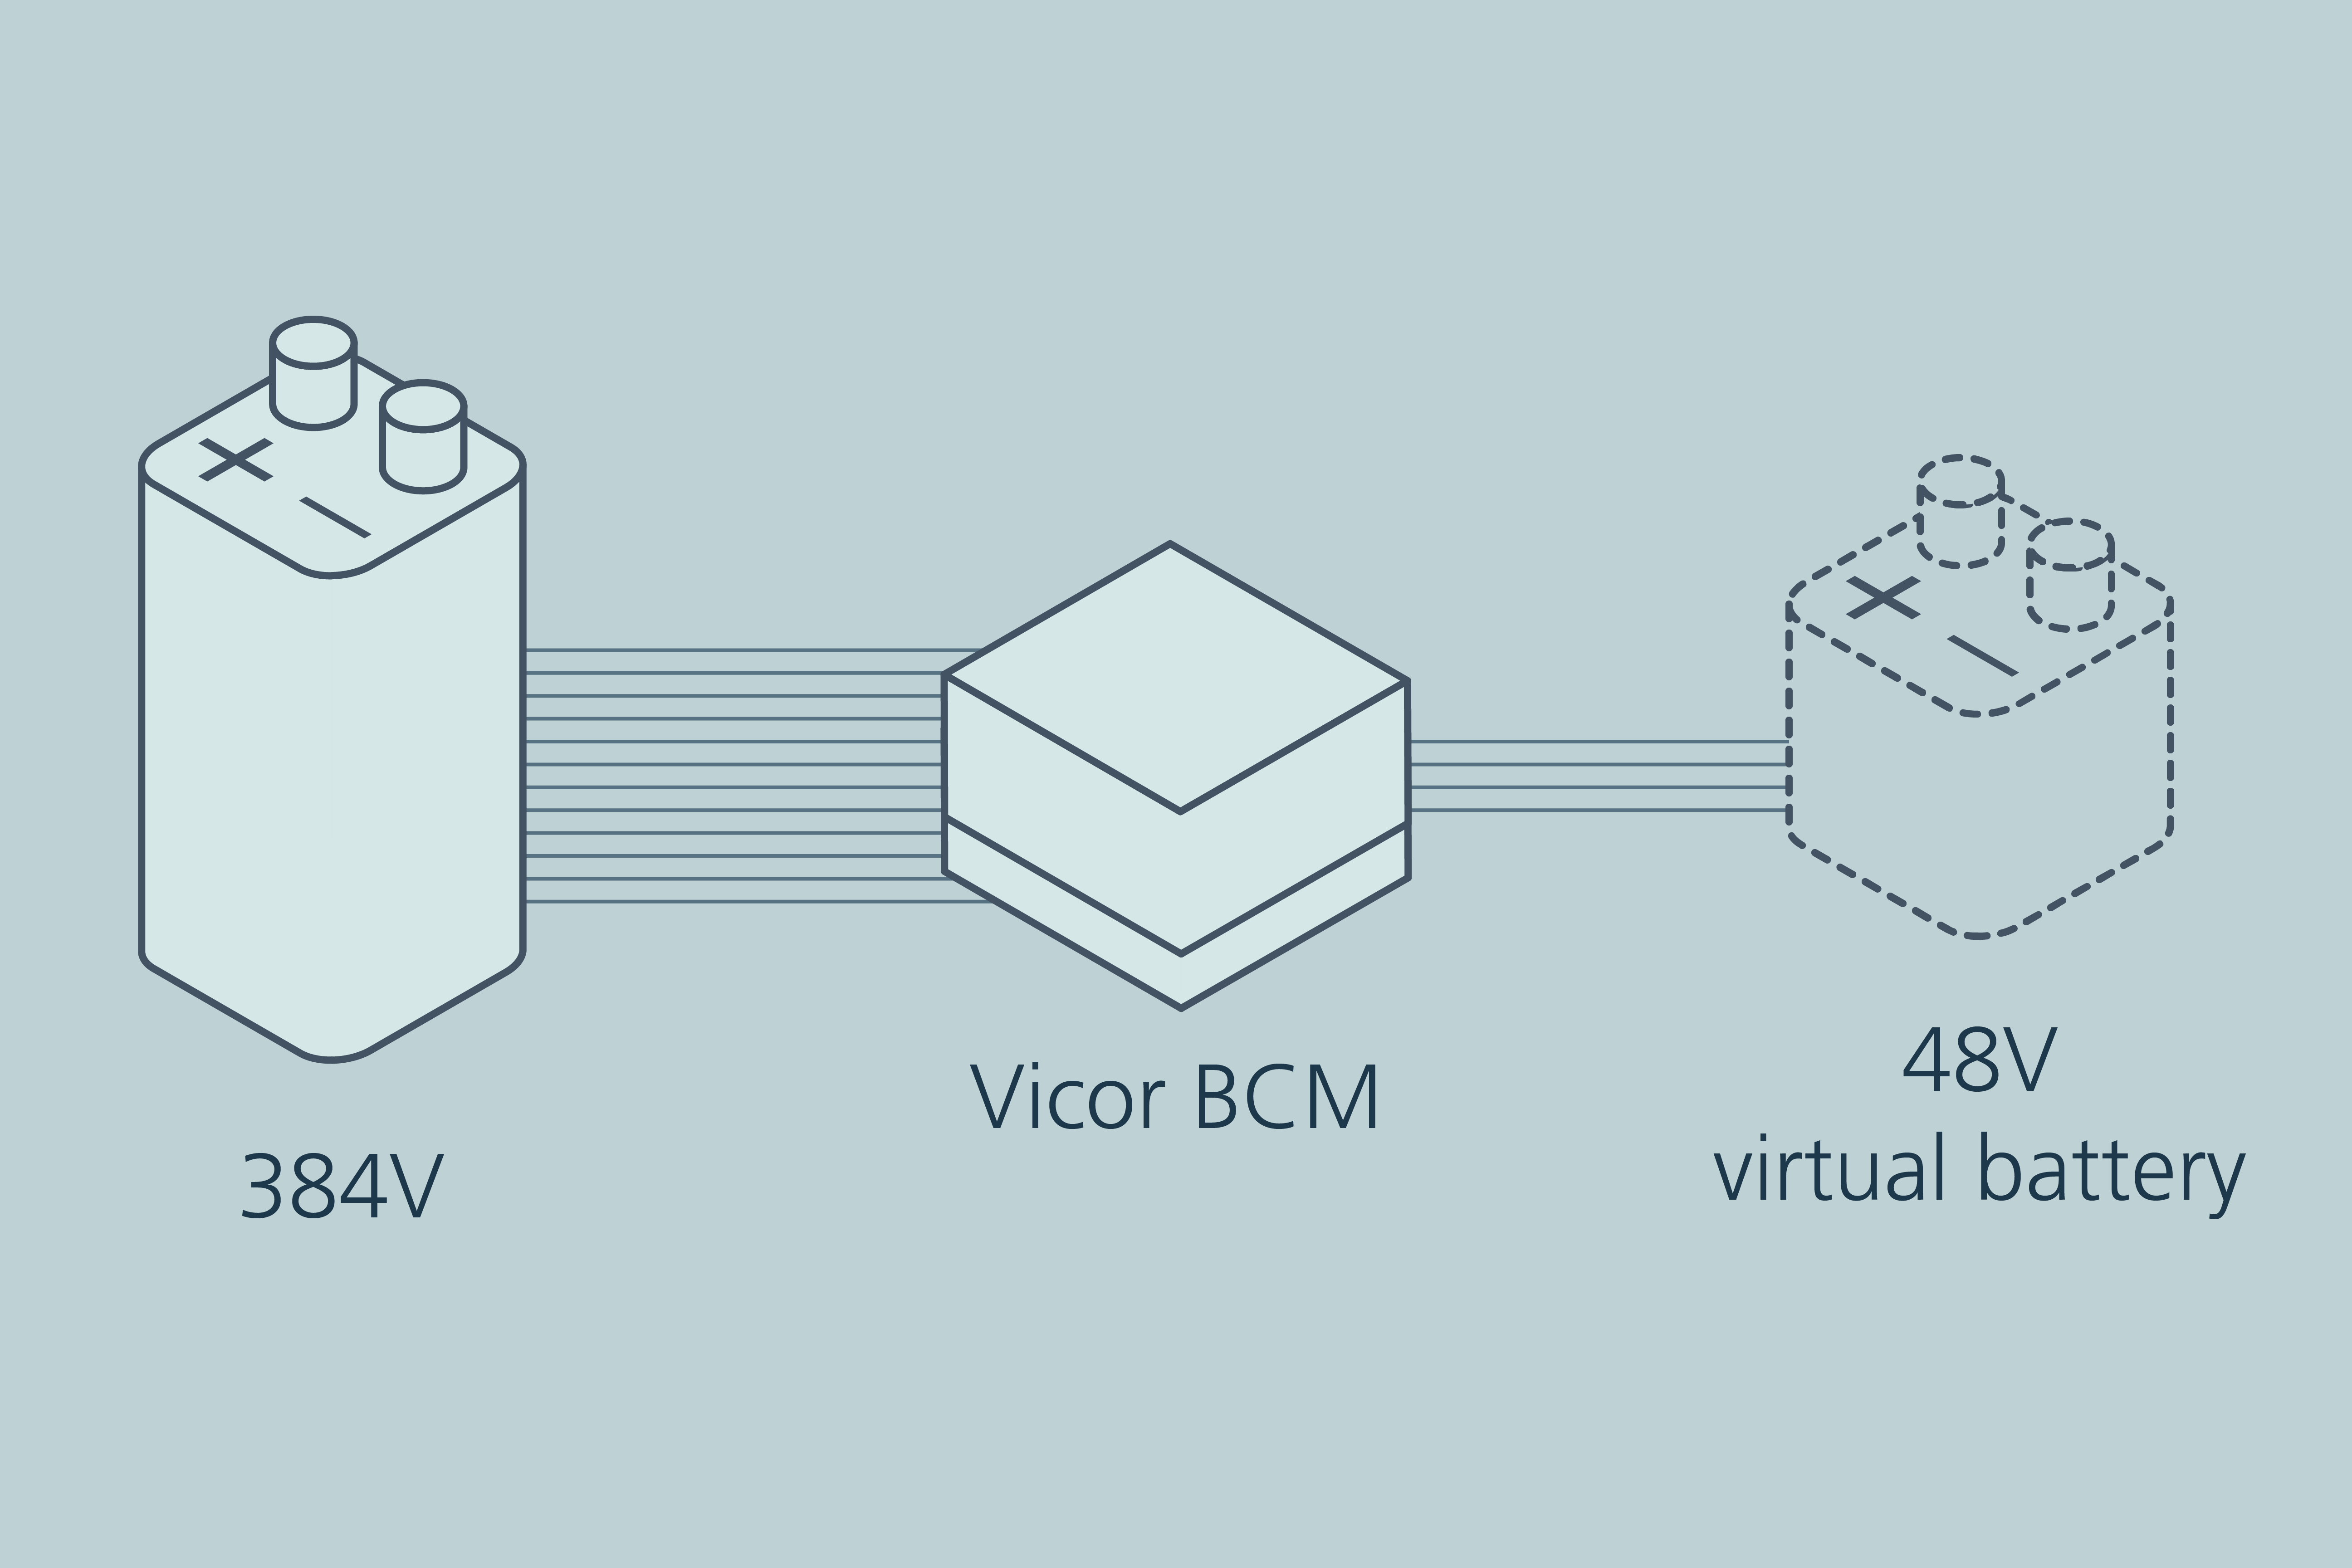 BCMs Transform High Voltage Batteries Into SELV Systems thumbnail